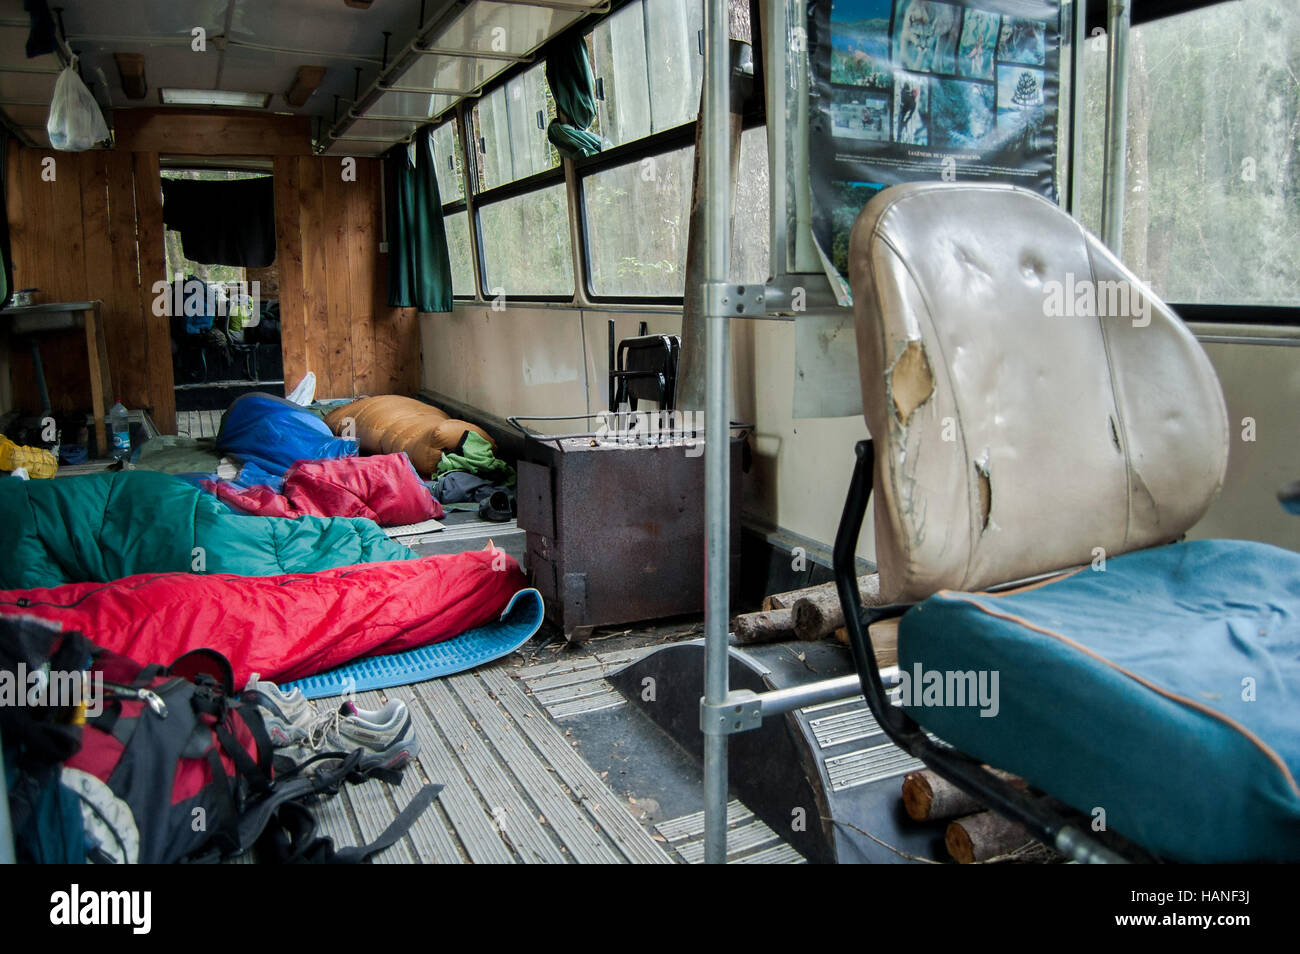 A group of travelers sleep inside an old bus transformed into a hostel Stock Photo